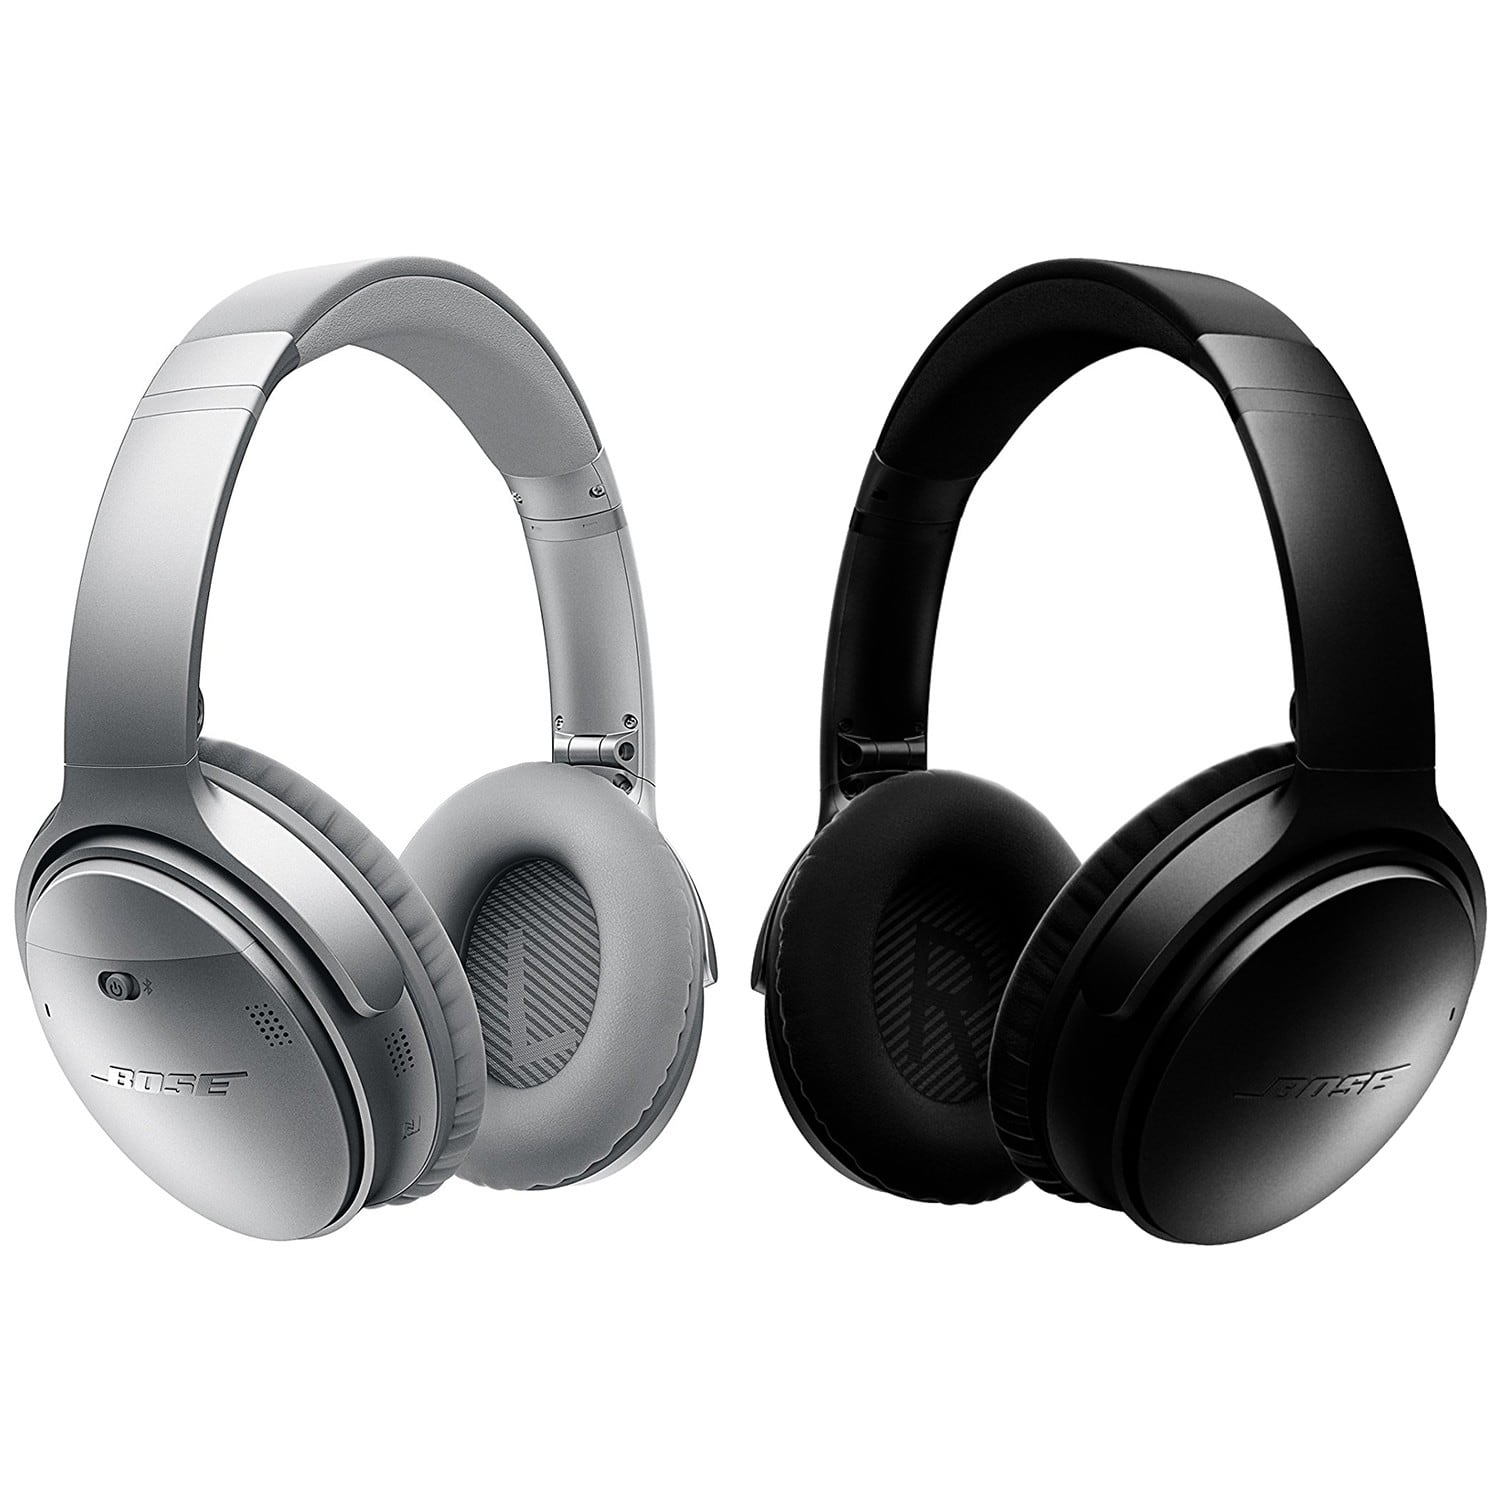 Bose Quiet Comfort 35 II Wireless Noise Cancelling Headphones $220 each + free s/h